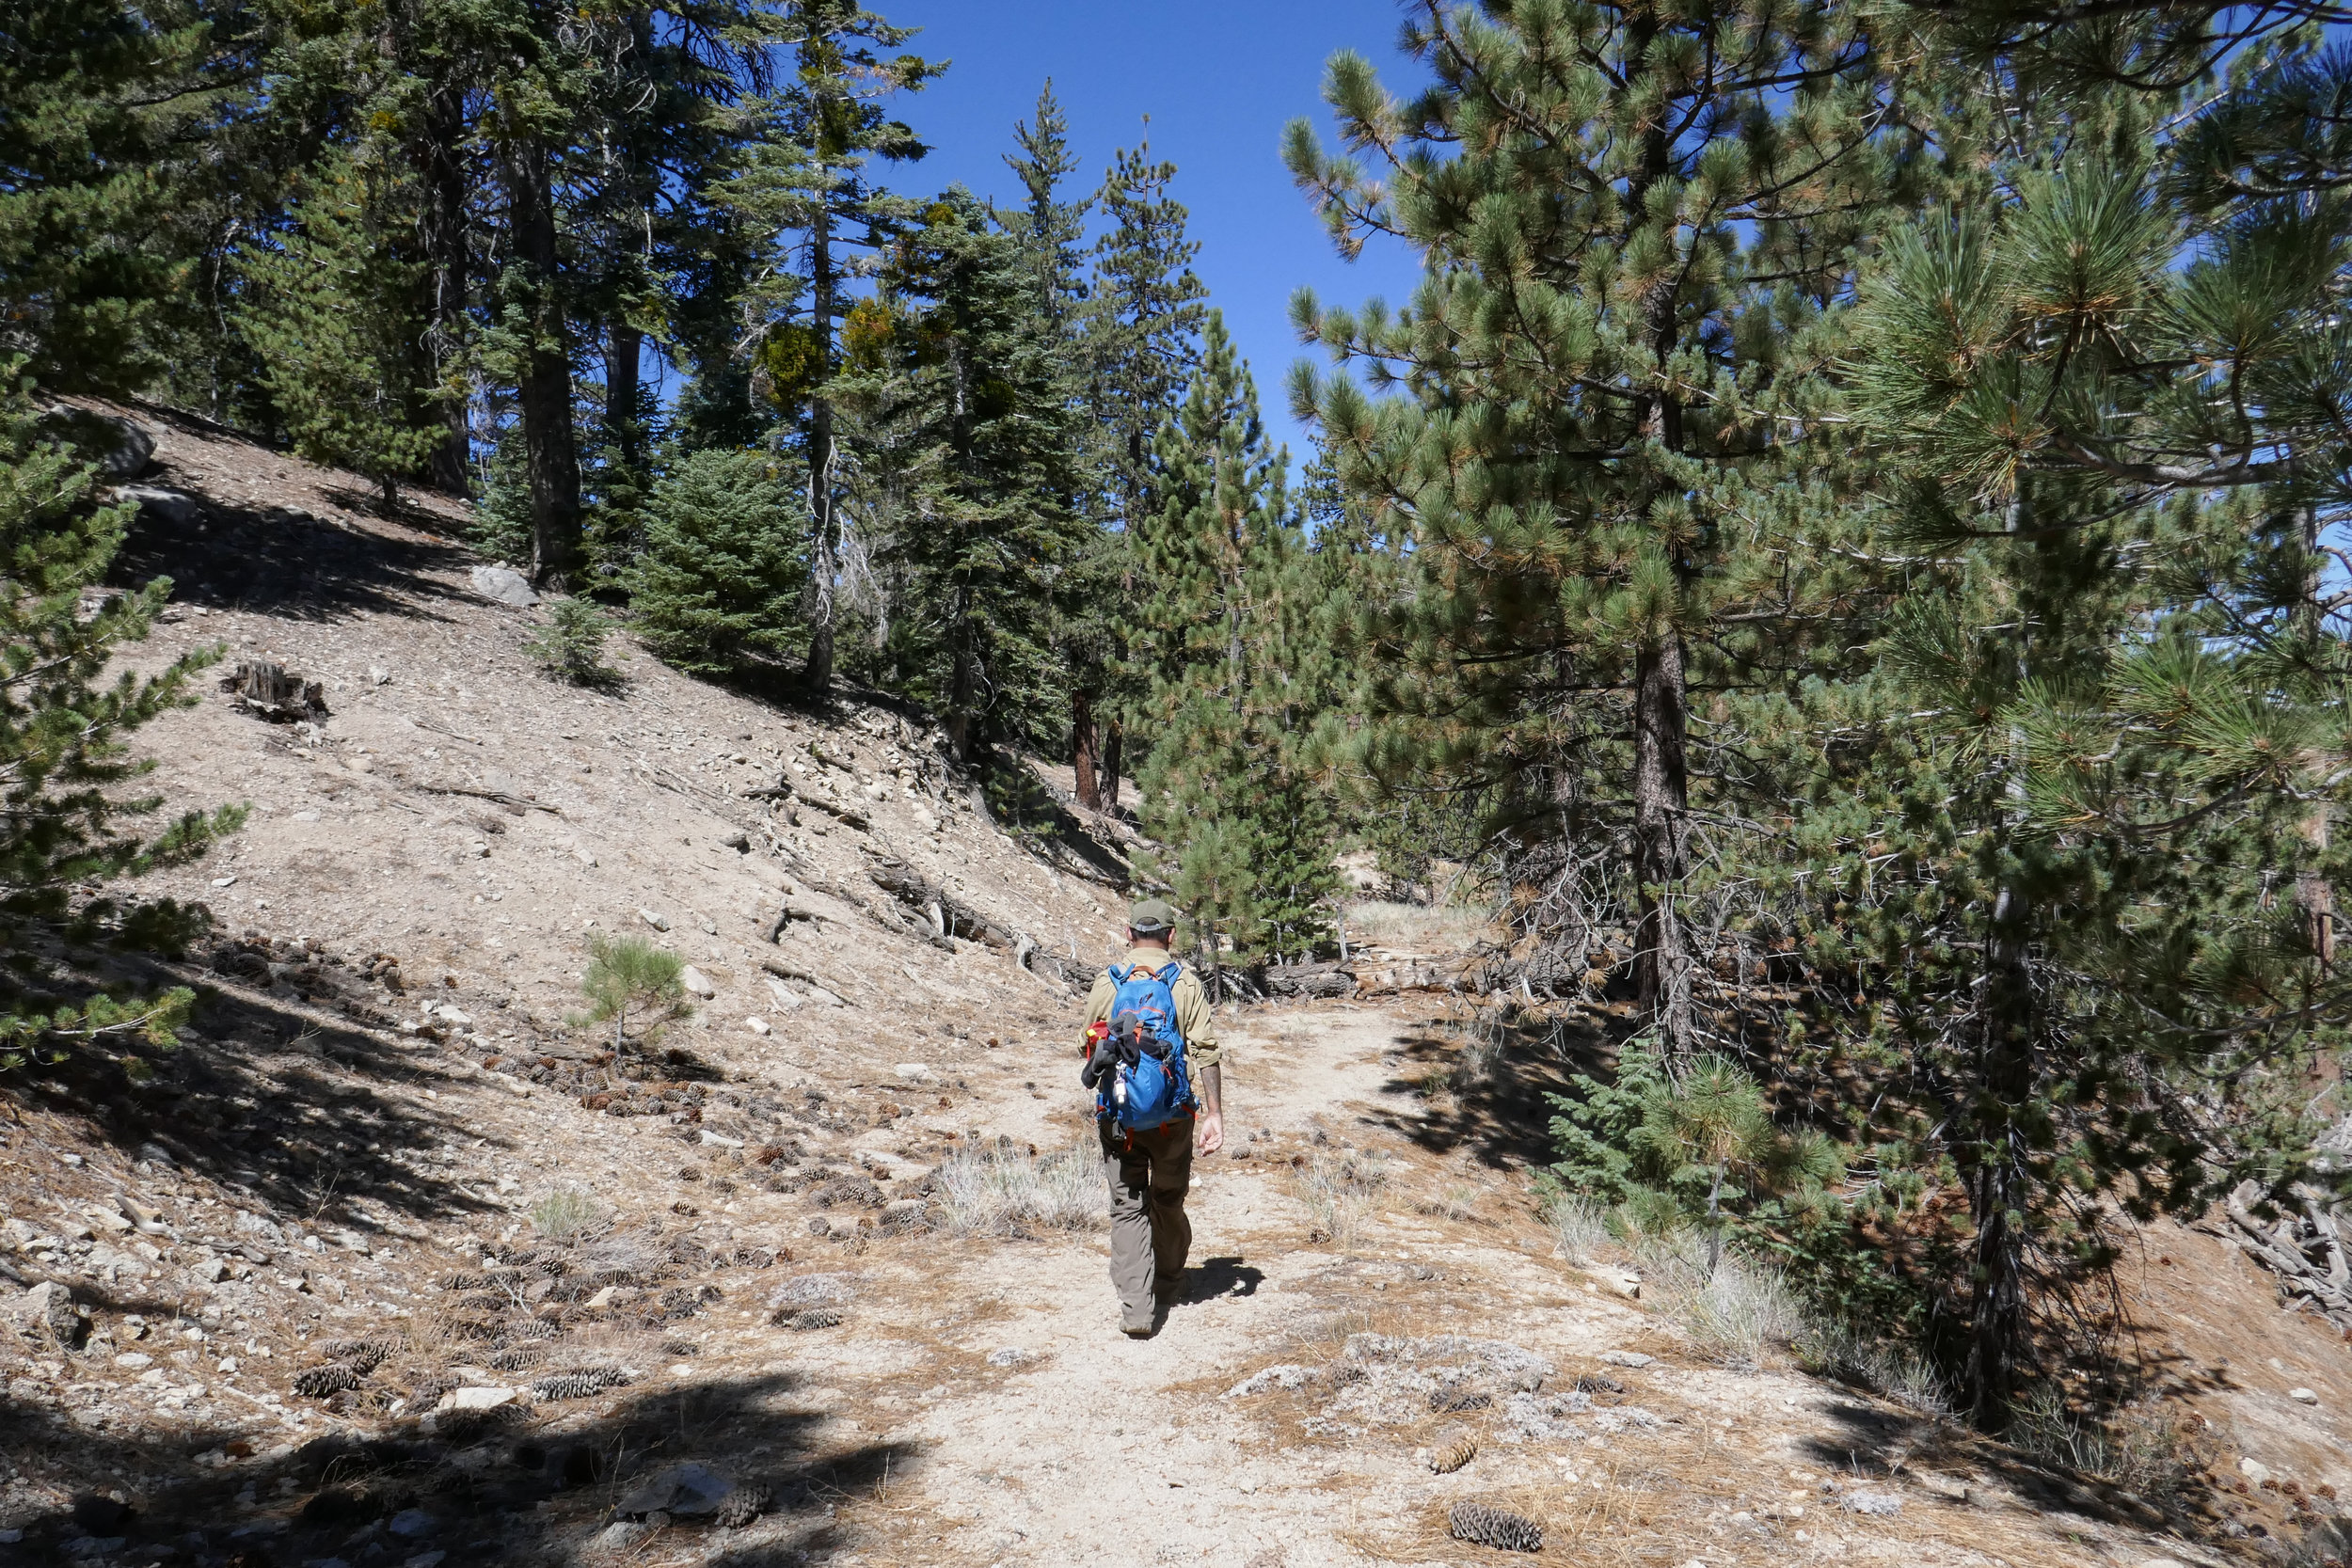 We take one more side trip before getting back on the trail leading to the parking area. It's already close to 11 am and we are hungry for lunch, so we decided to explore it another time.